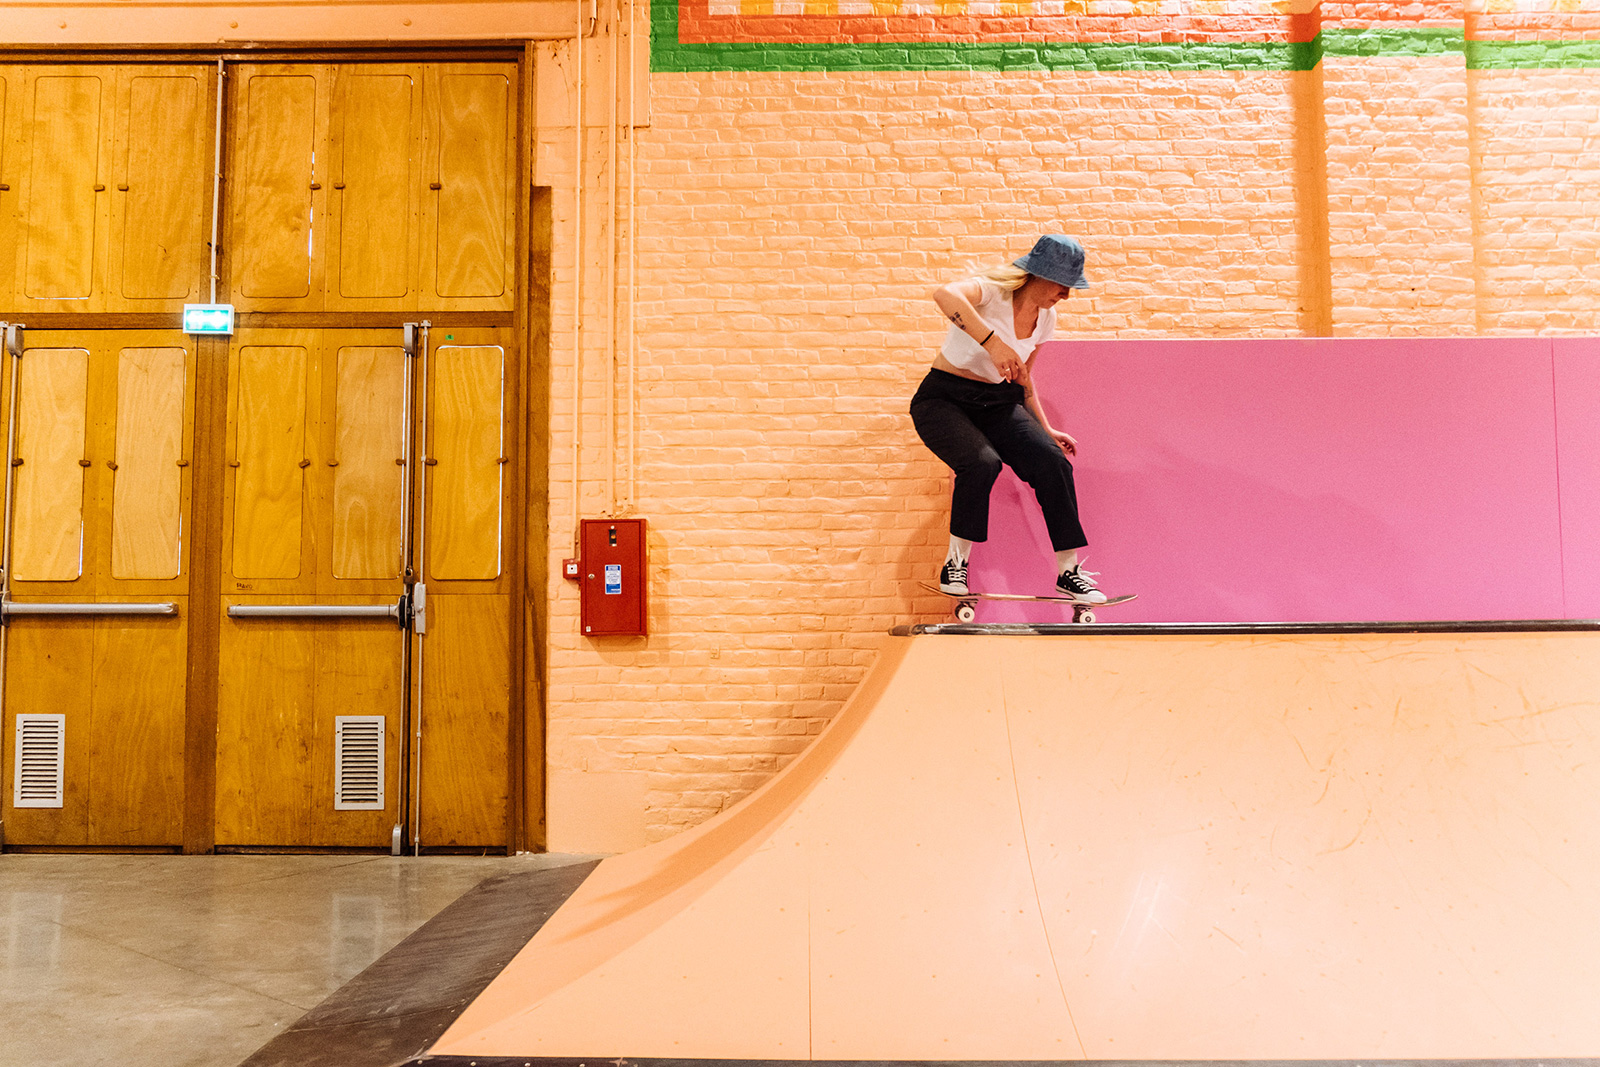 Yinka Ilori drenches Roubaix's skatepark in fluorescent paint - padstyle